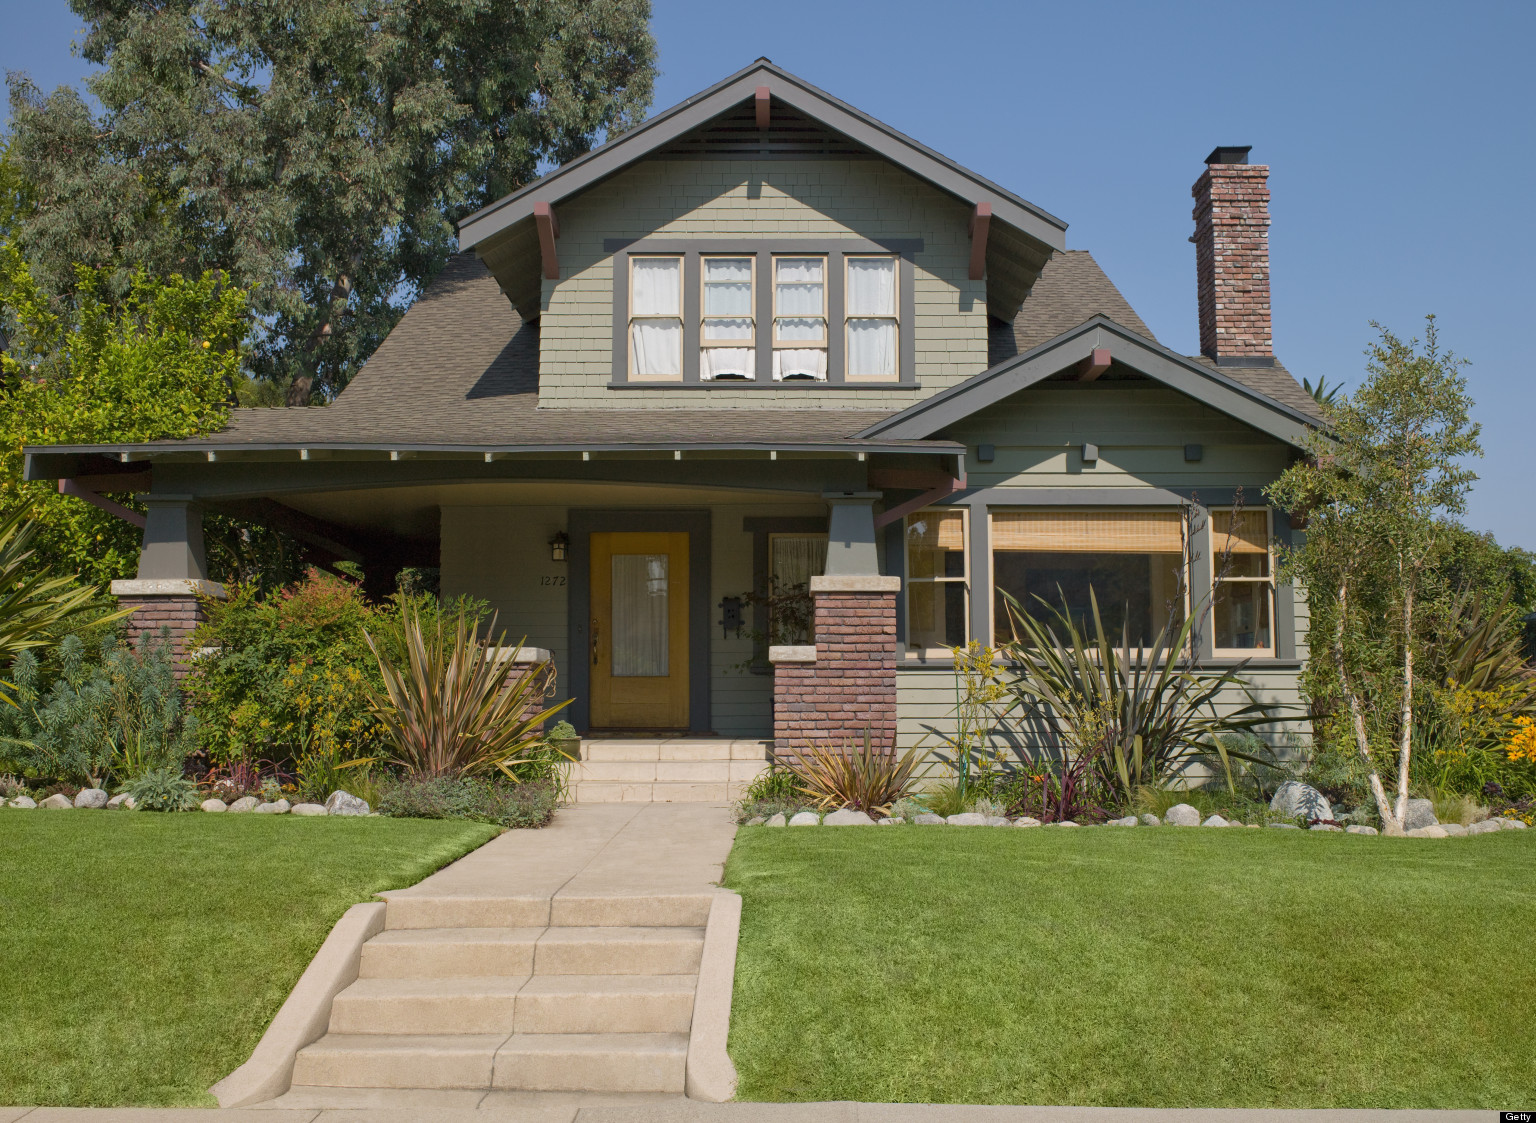 Southern California Home Sales In May 2013 Hit 7 Year High